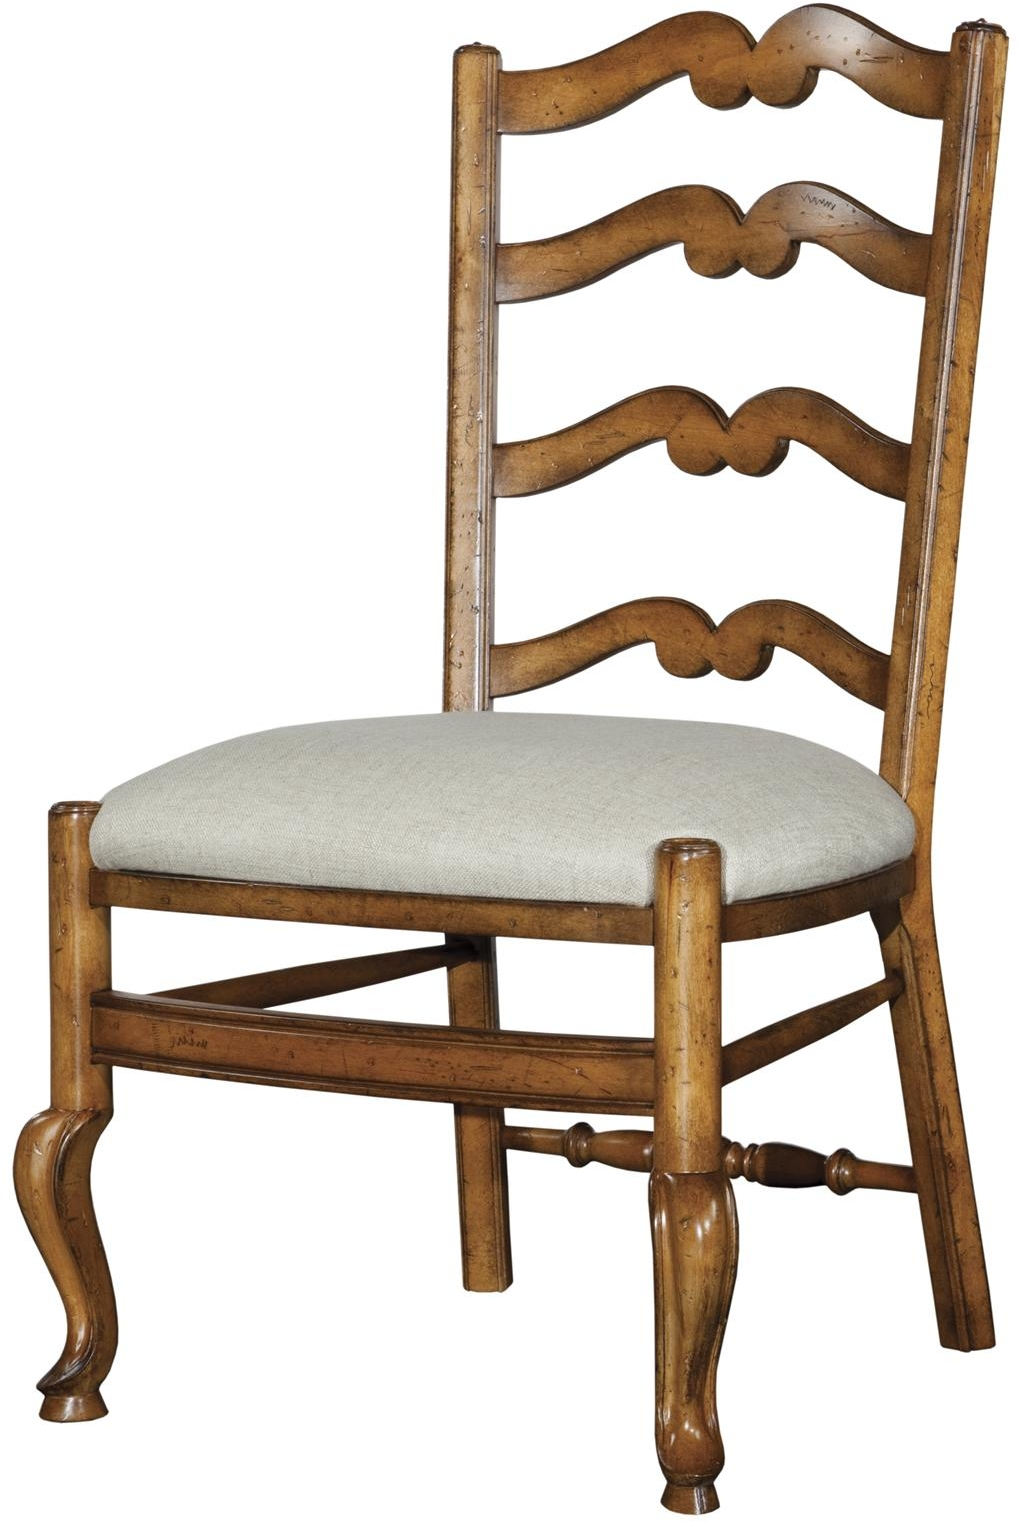 SET 6 NEW French Provincial Dining Chairs Ladderback Wood  : WB 410 0L from www.ebay.ca size 1018 x 1522 jpeg 426kB